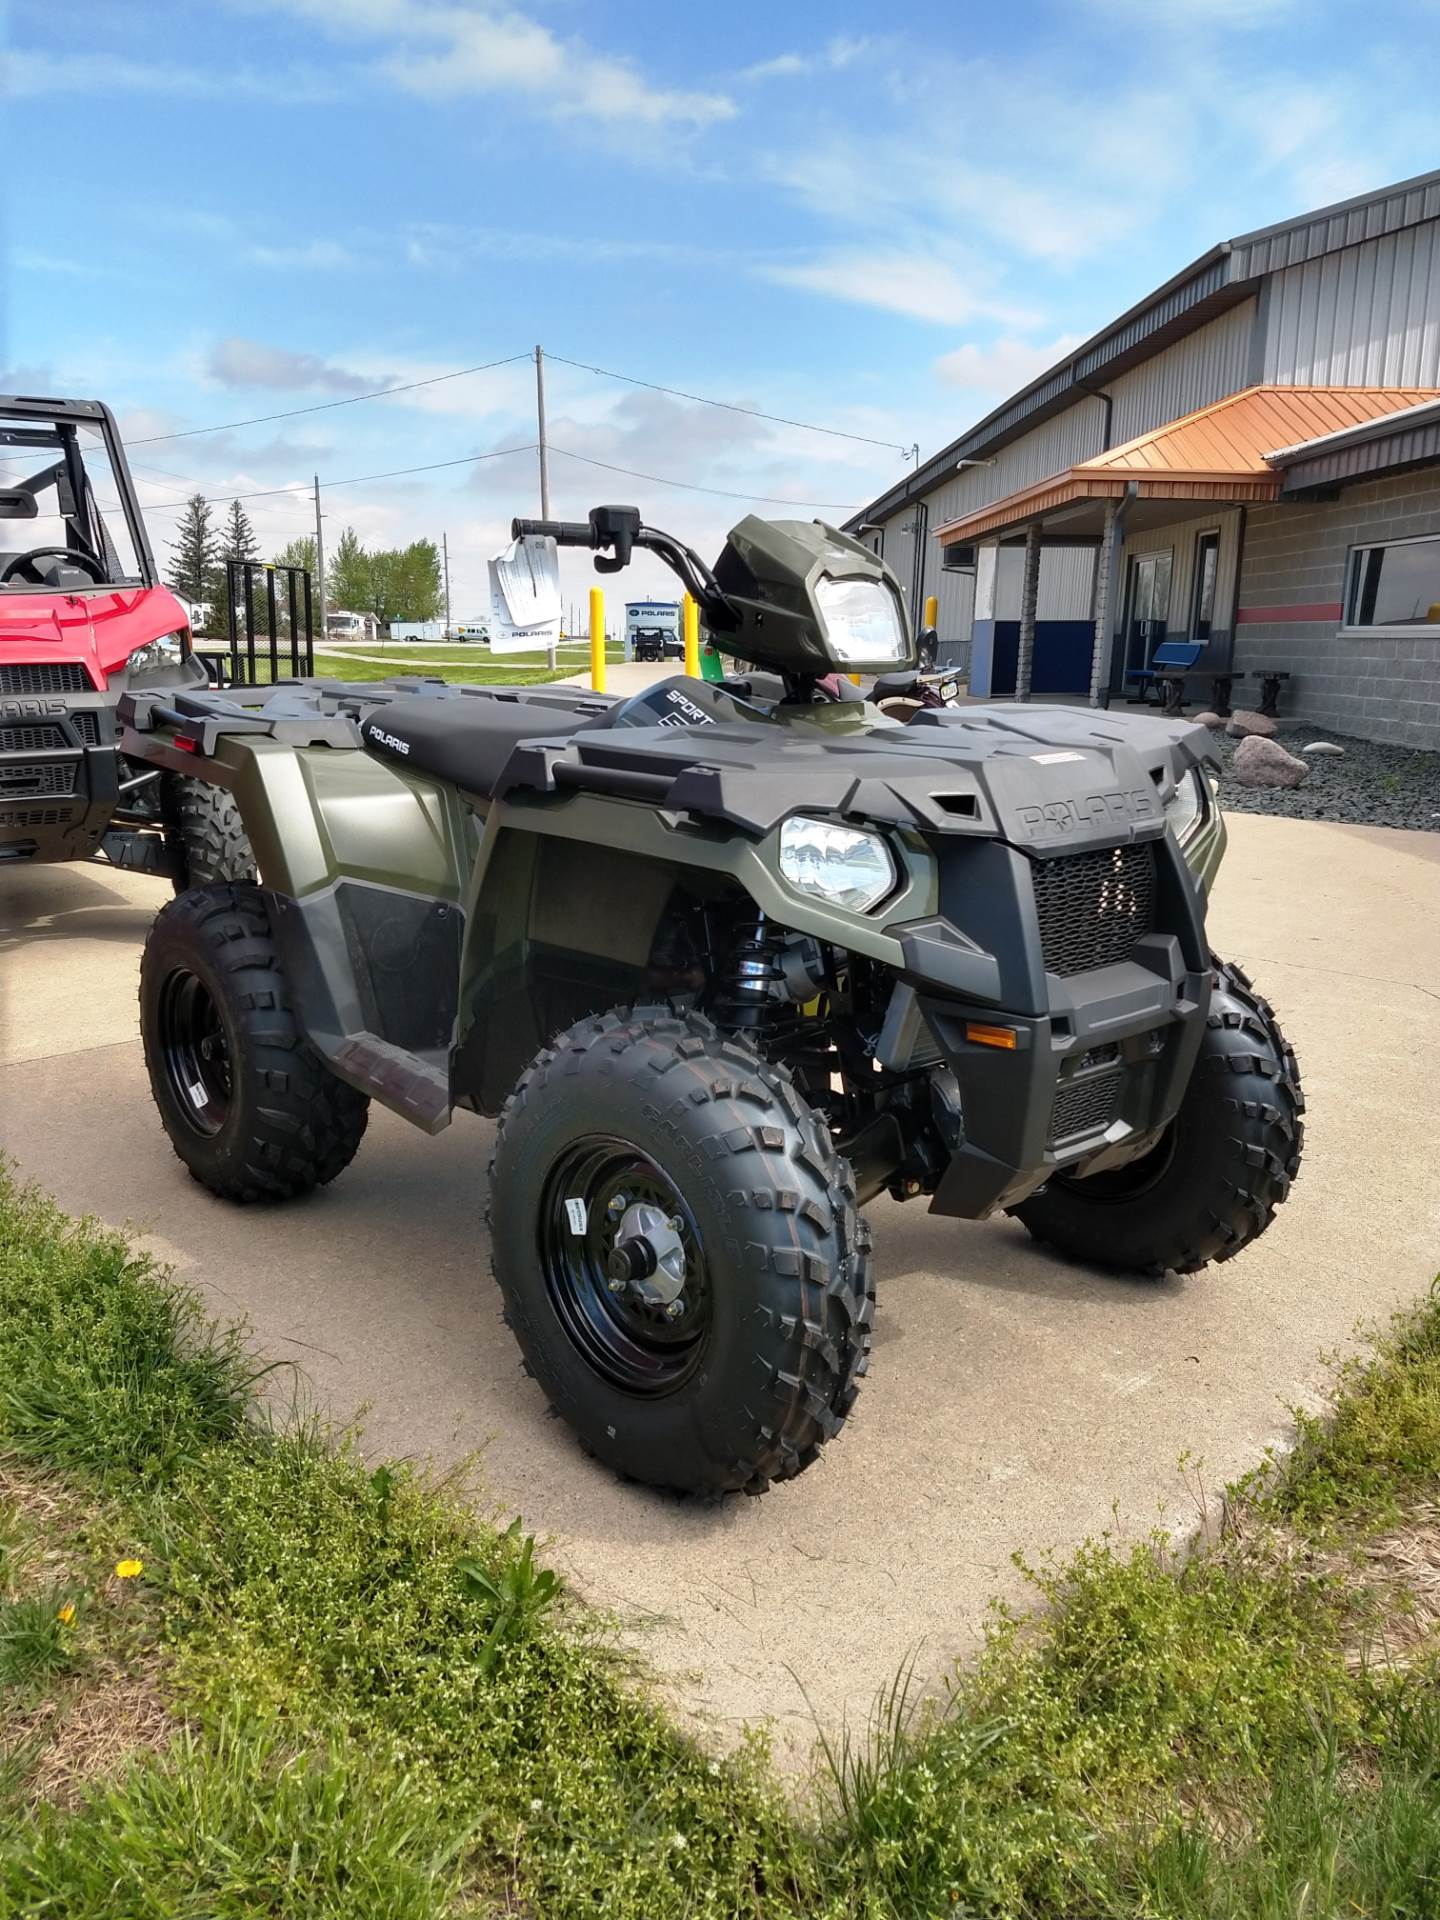 2019 Polaris Sportsman 570 EPS in Ottumwa, Iowa - Photo 1